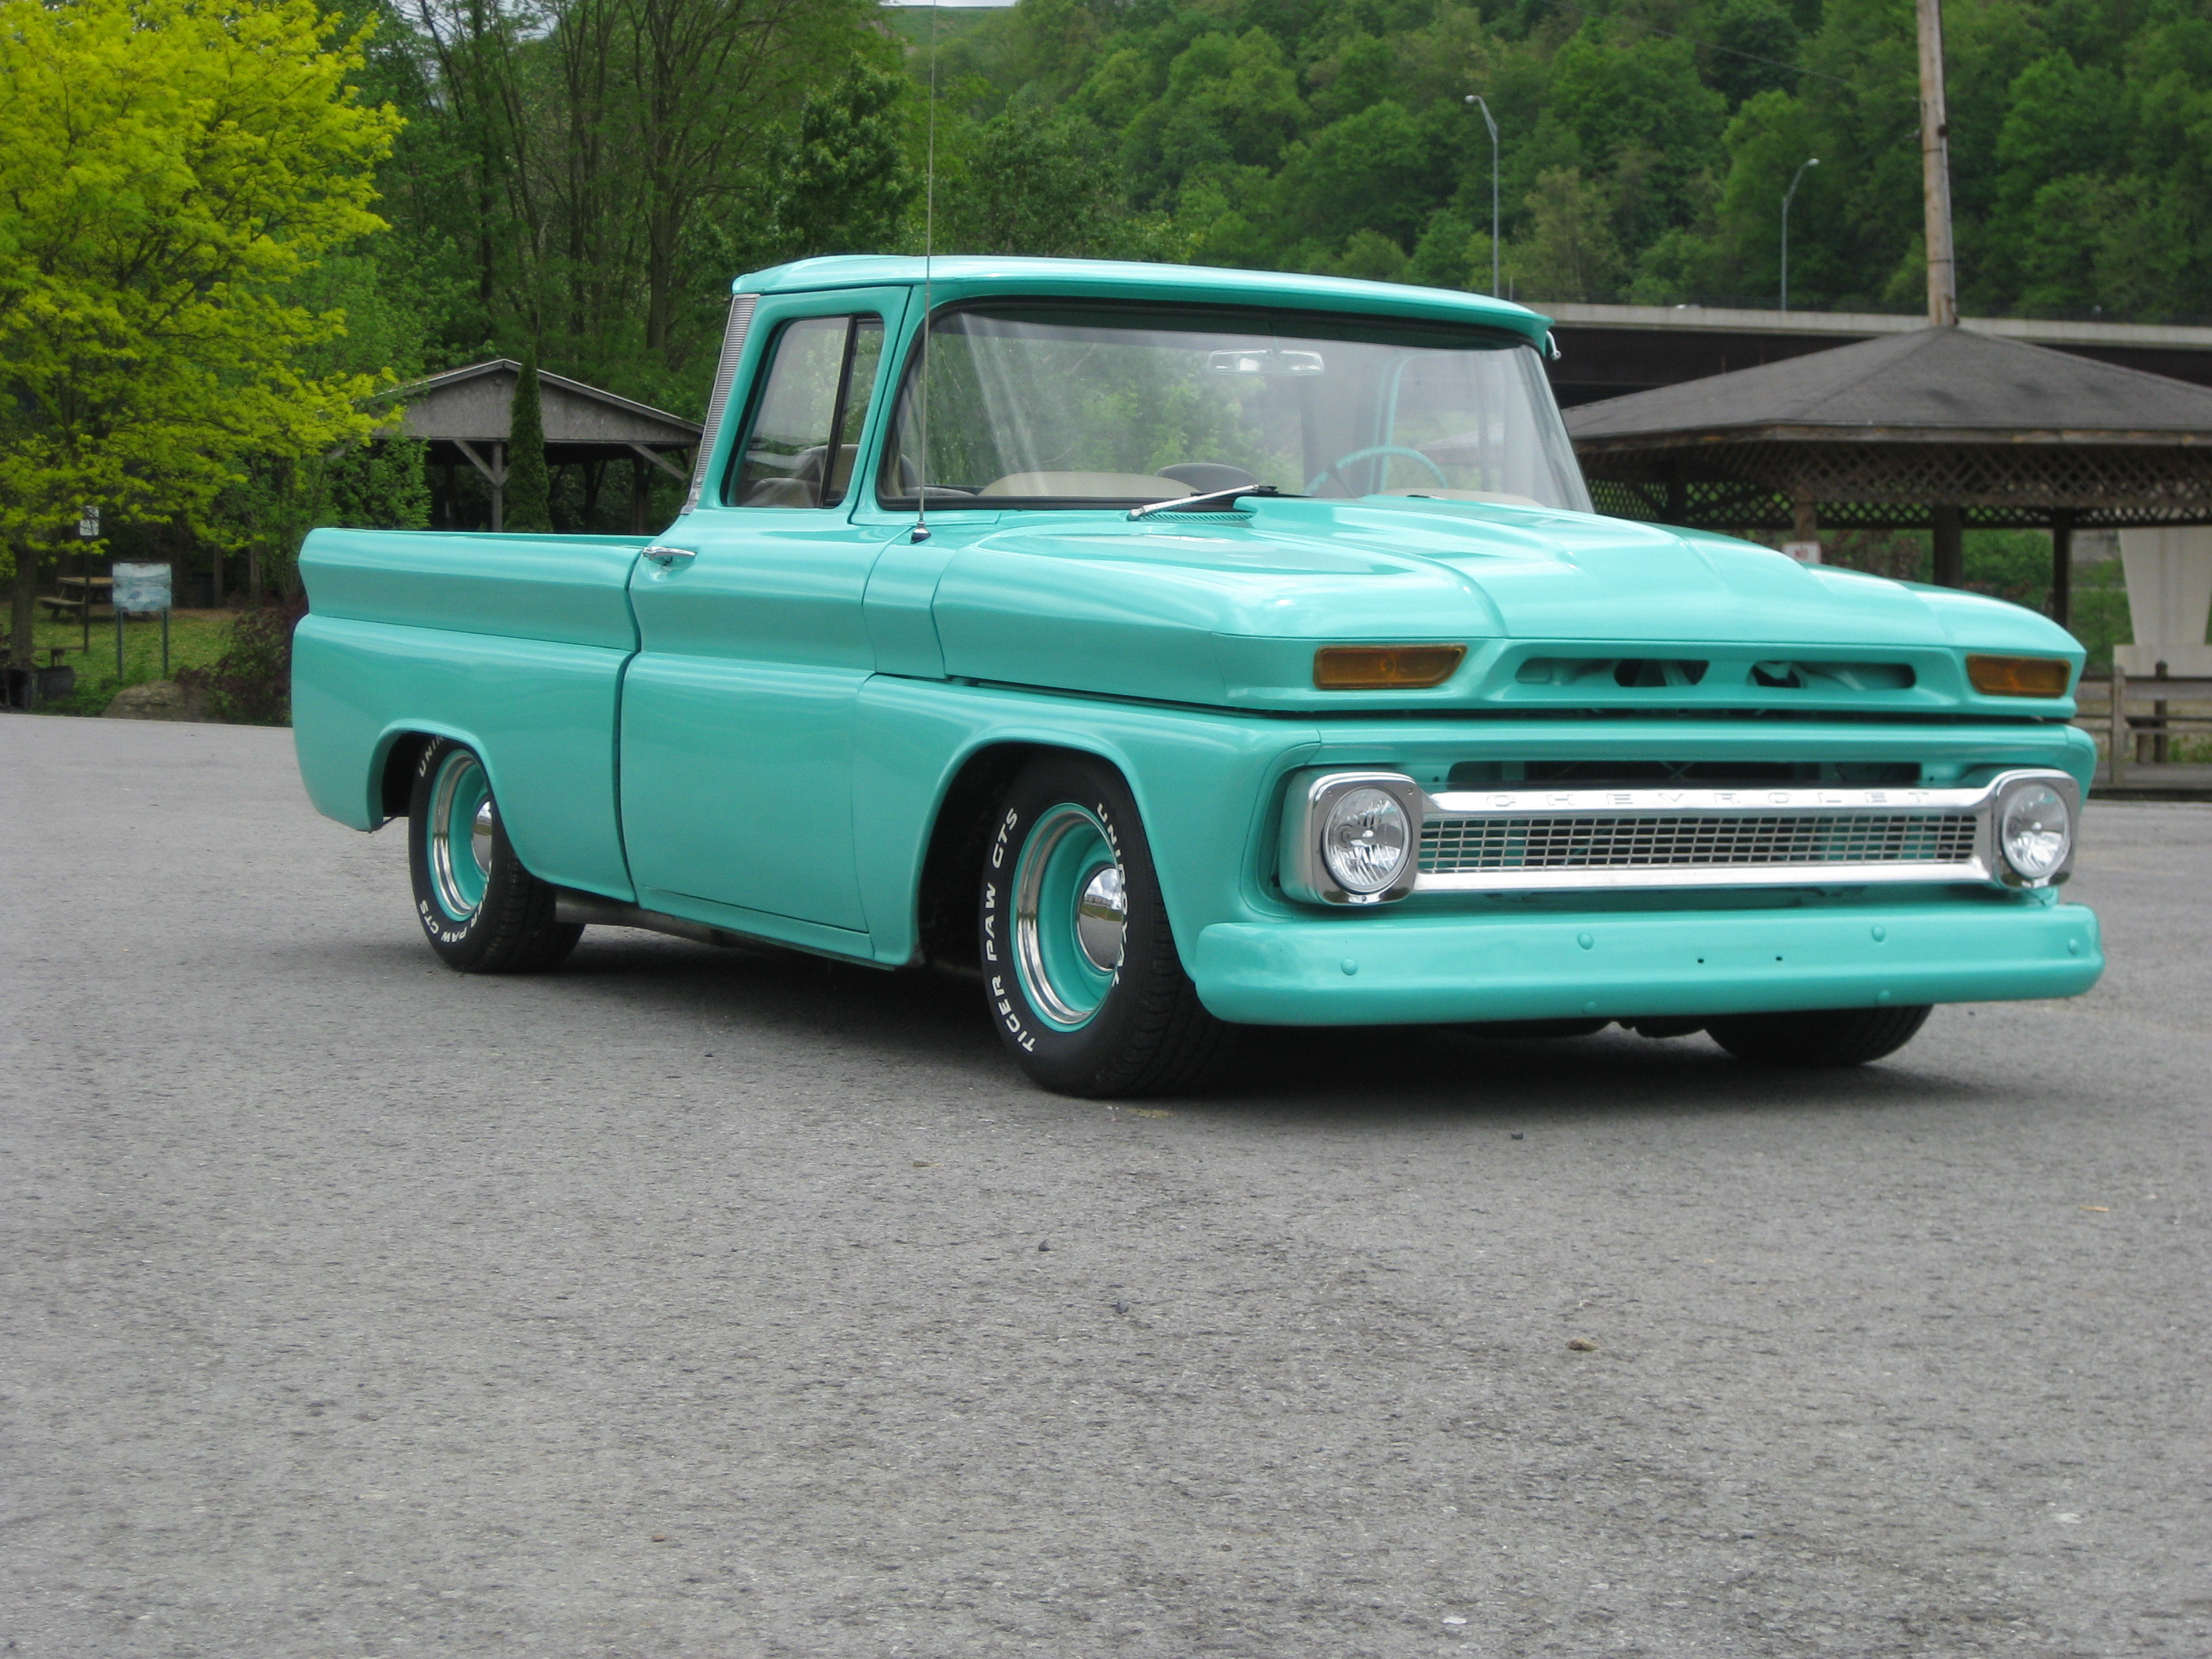 Trucks For Sale In Wv >> DioCustoms 1963 Chevrolet 150 Specs, Photos, Modification Info at CarDomain